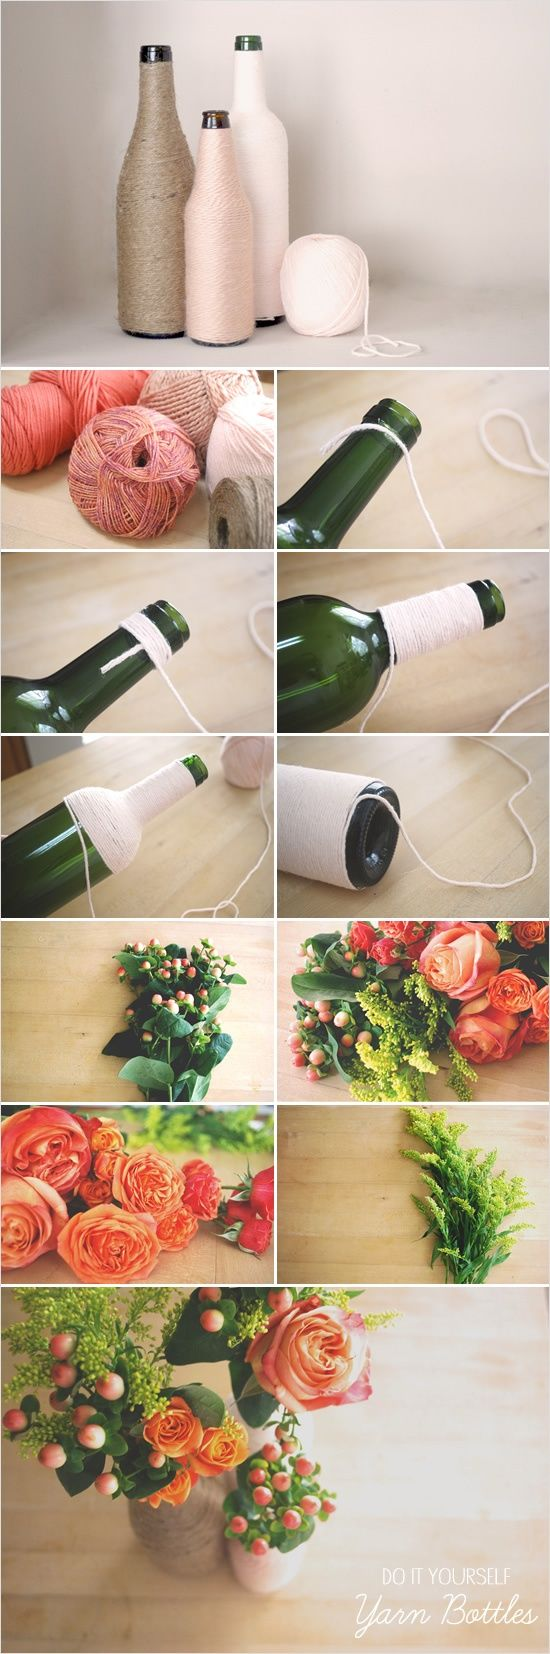 how to make yarn wrapped bottles for table centerpieces    Category » wedding ideas Archives « @ Page 2 of 603 «